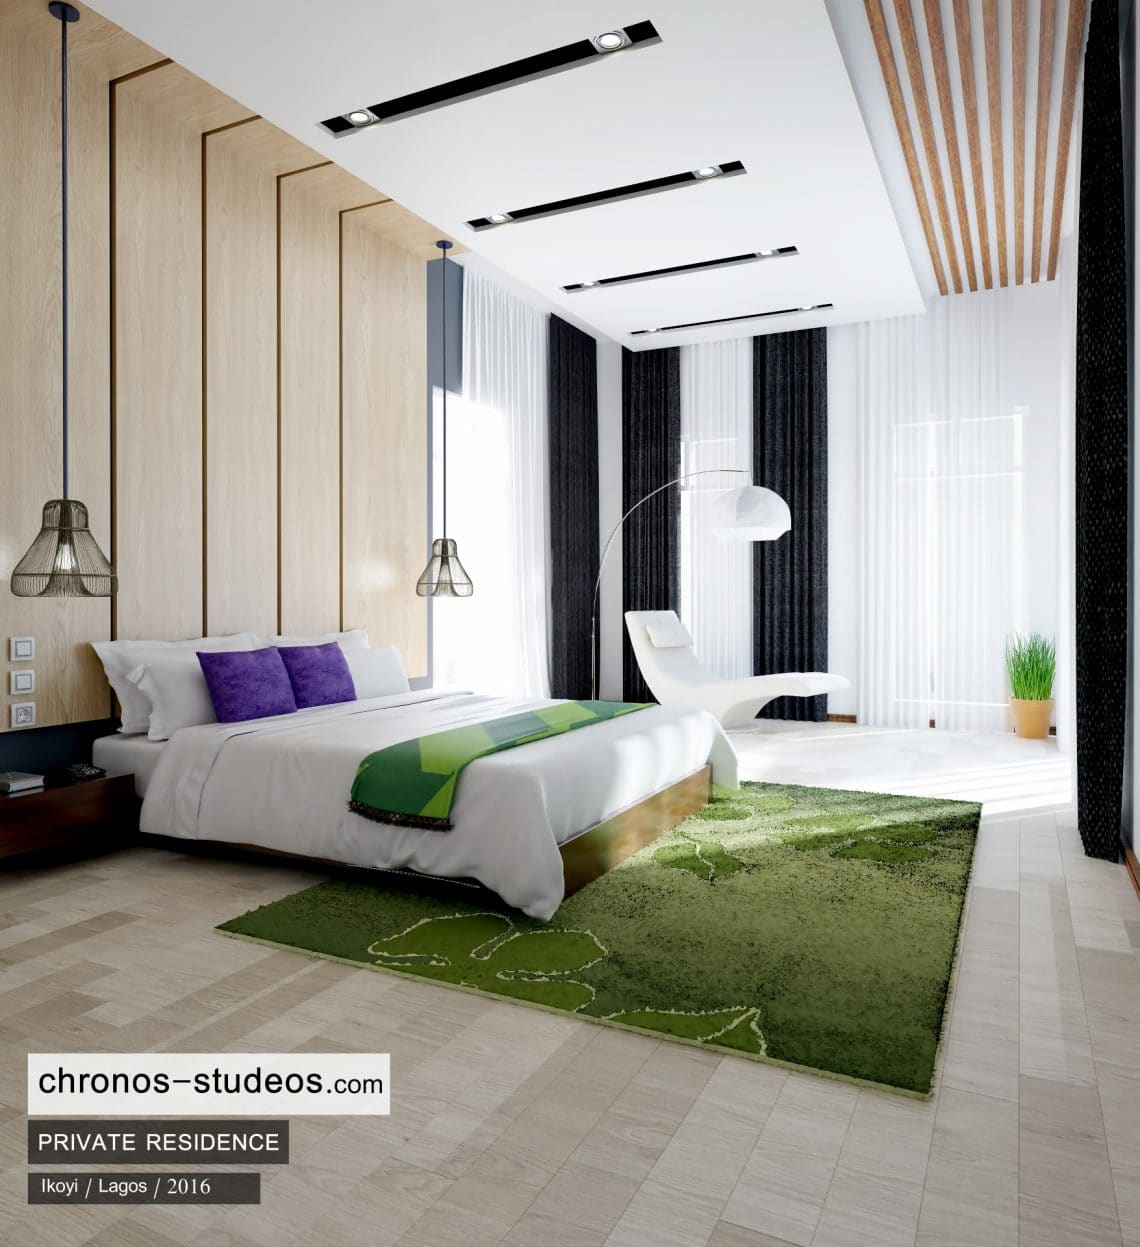 Bedroom Interior Design 3d Rendering Lagos Nigeria Chronos